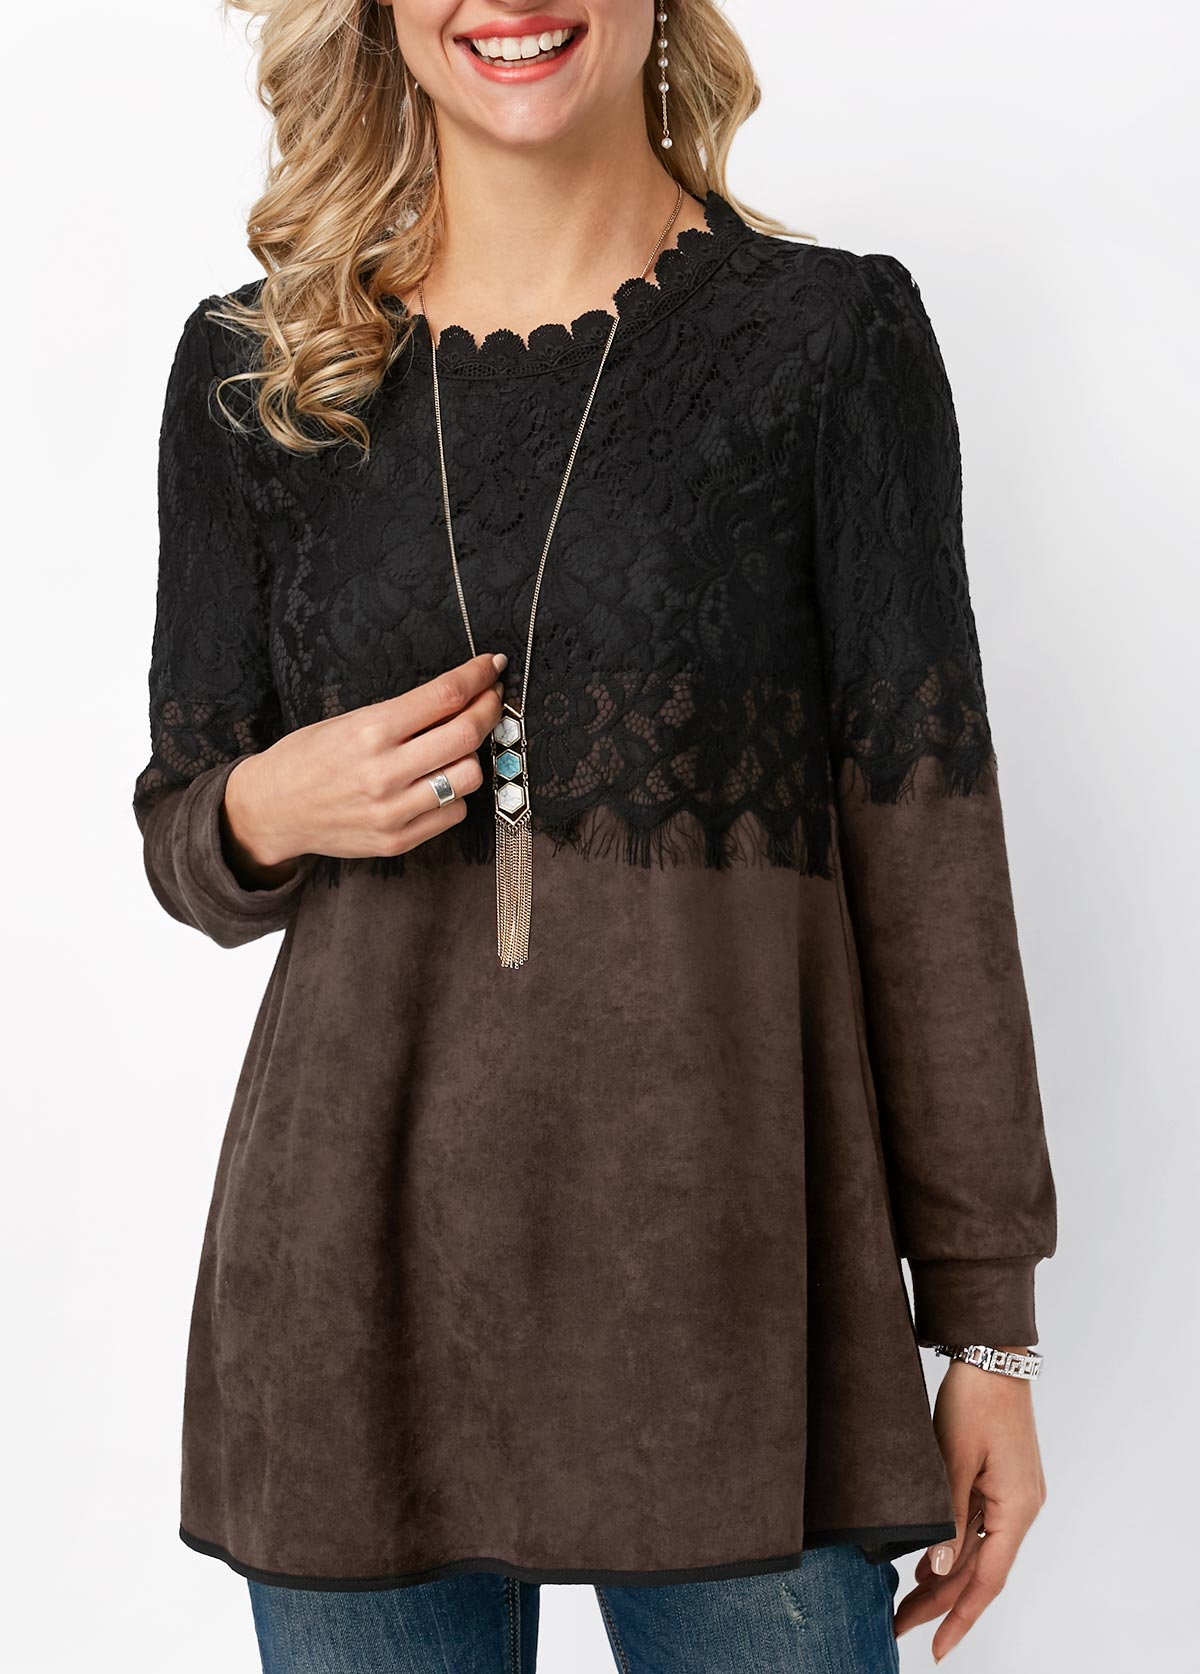 Round Neck Long Sleeve Lace Panel T Shirt